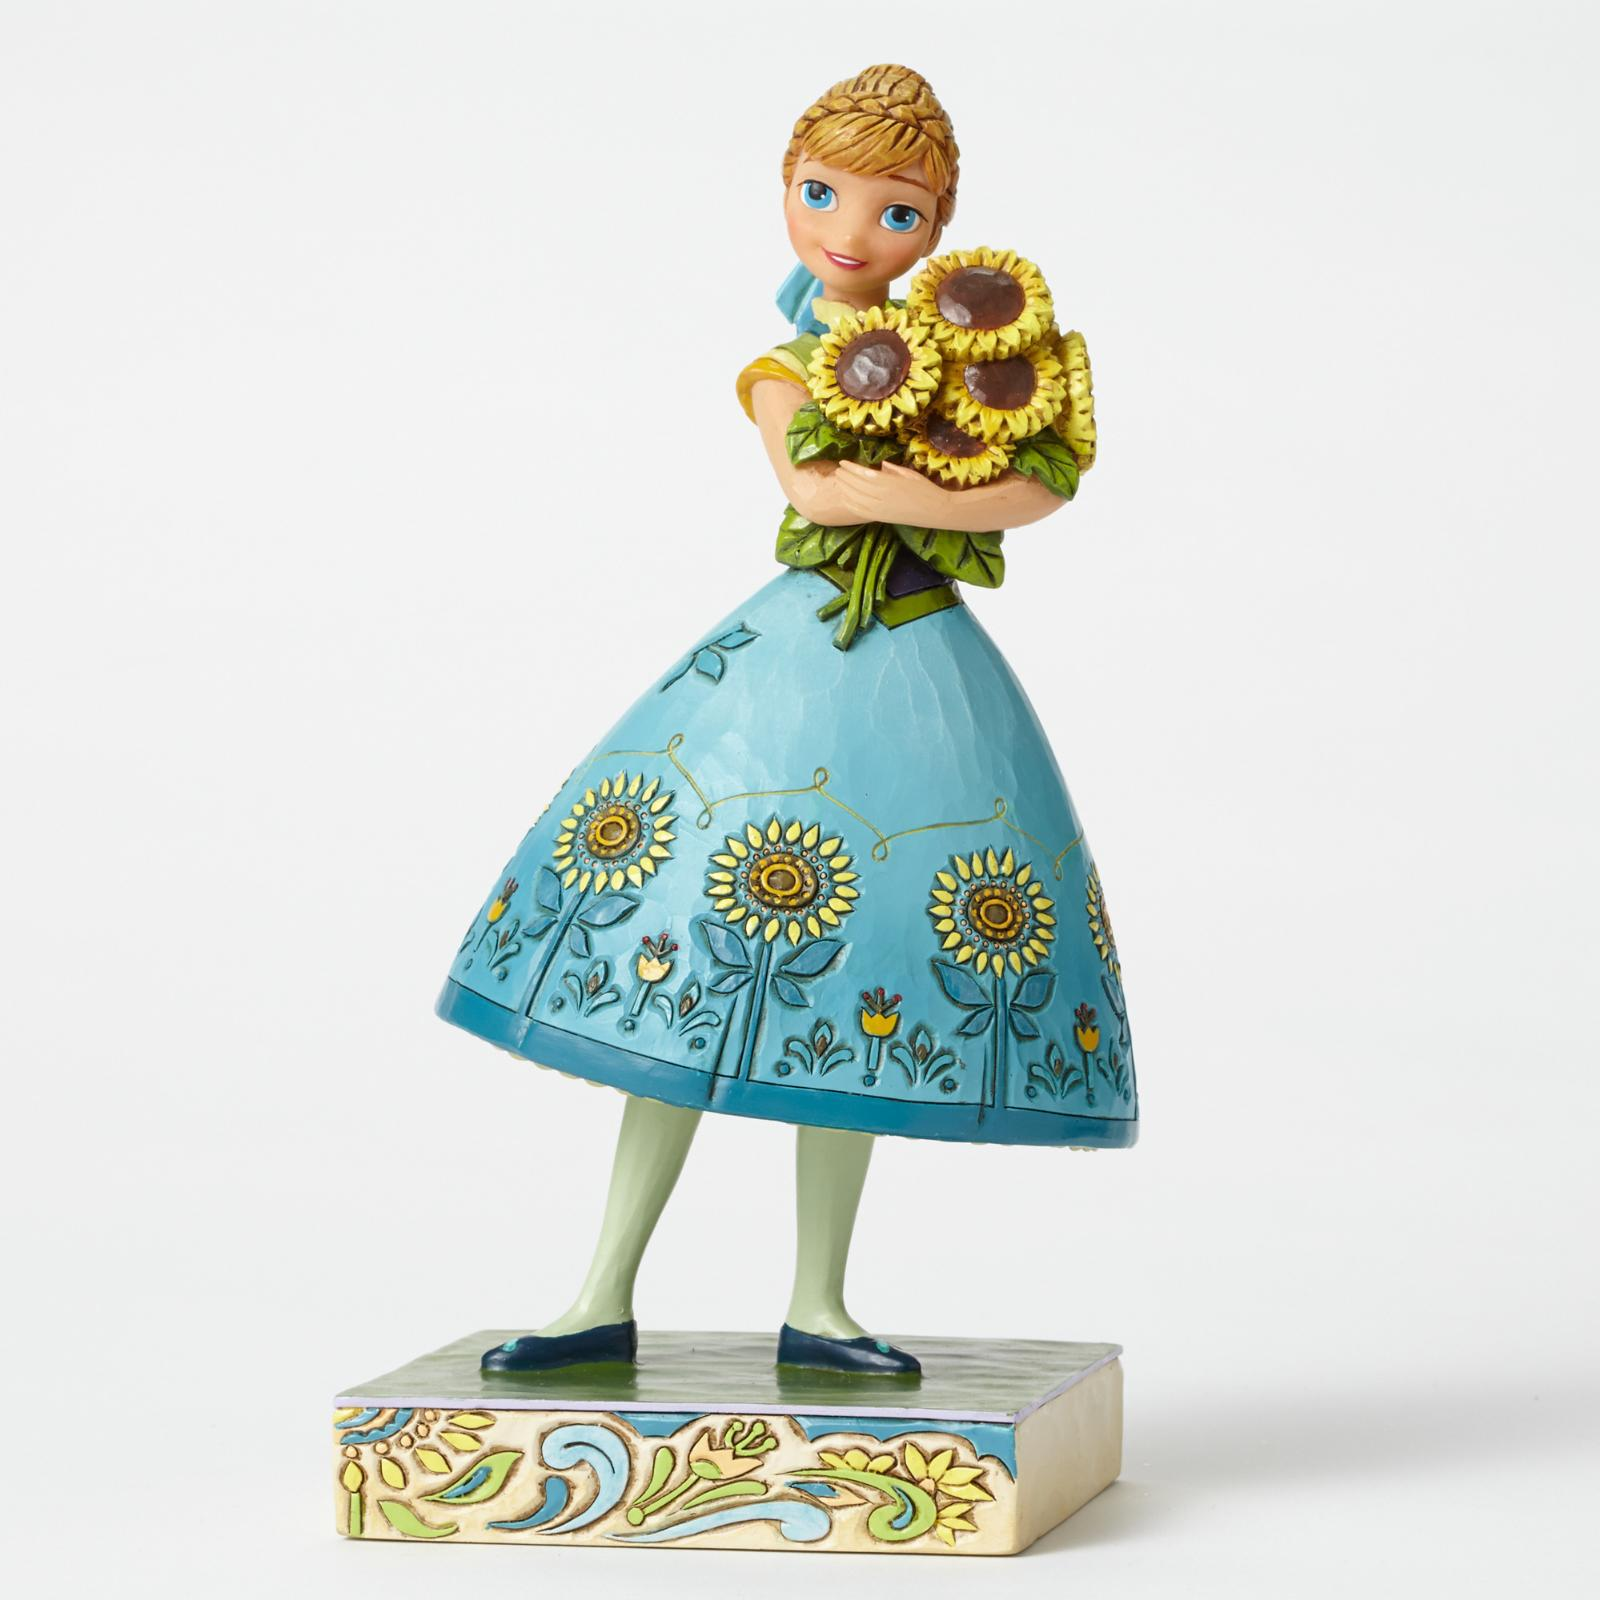 Anna From Frozen Fever - Spring In Bloom